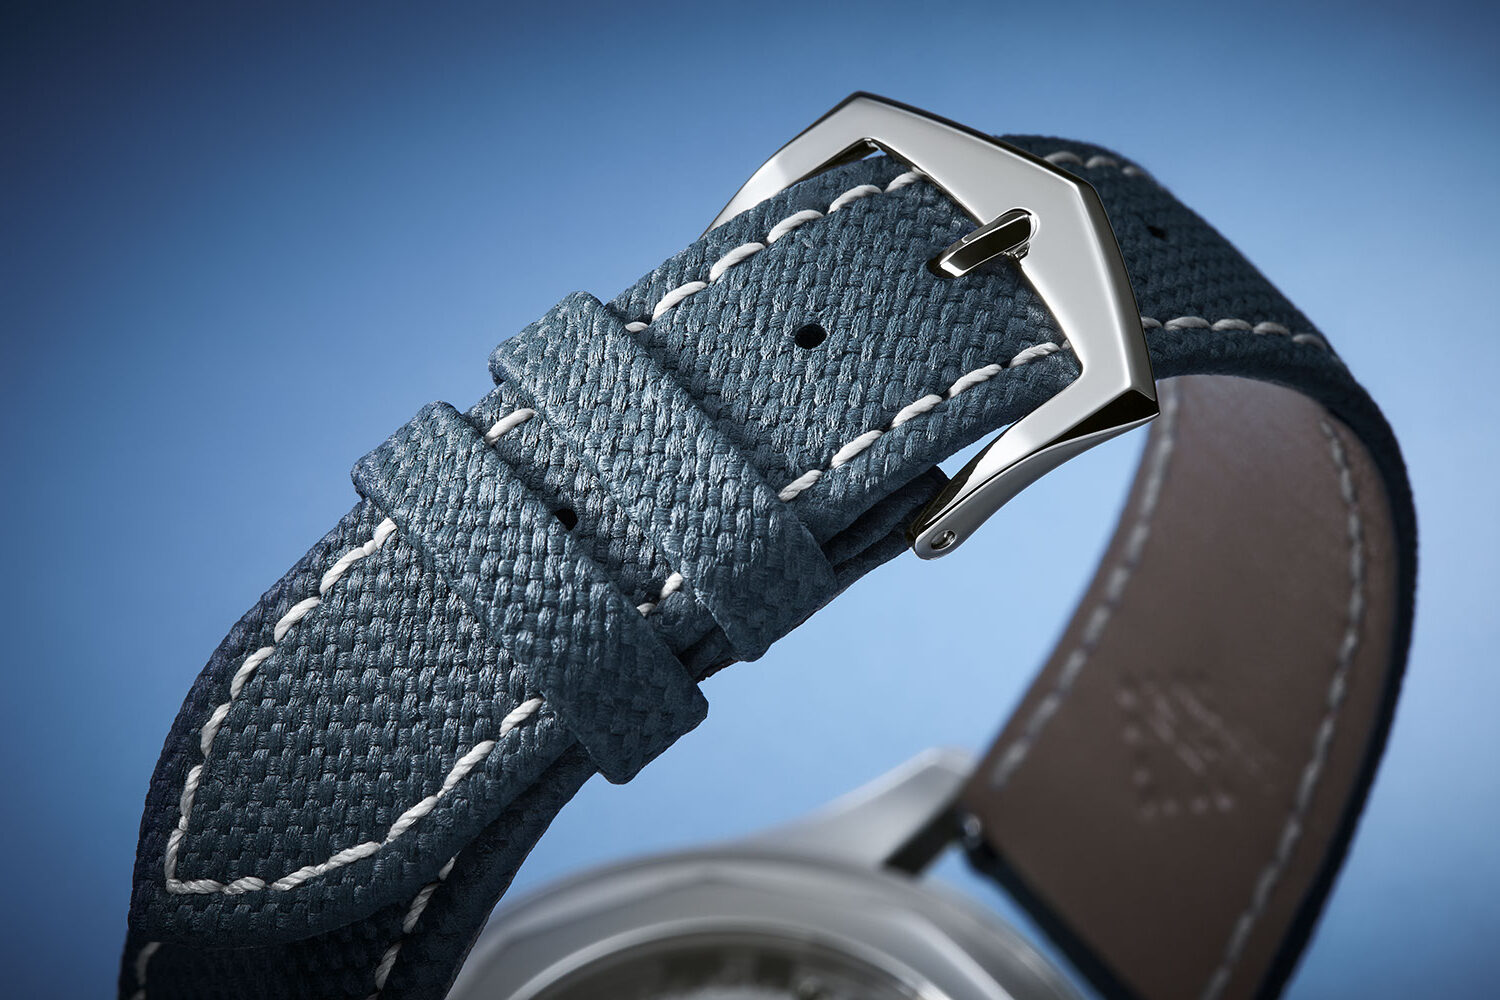 Blue-gray calf skin strap with stainless steel prong buckle on the reference 6007A-001 Calatrava